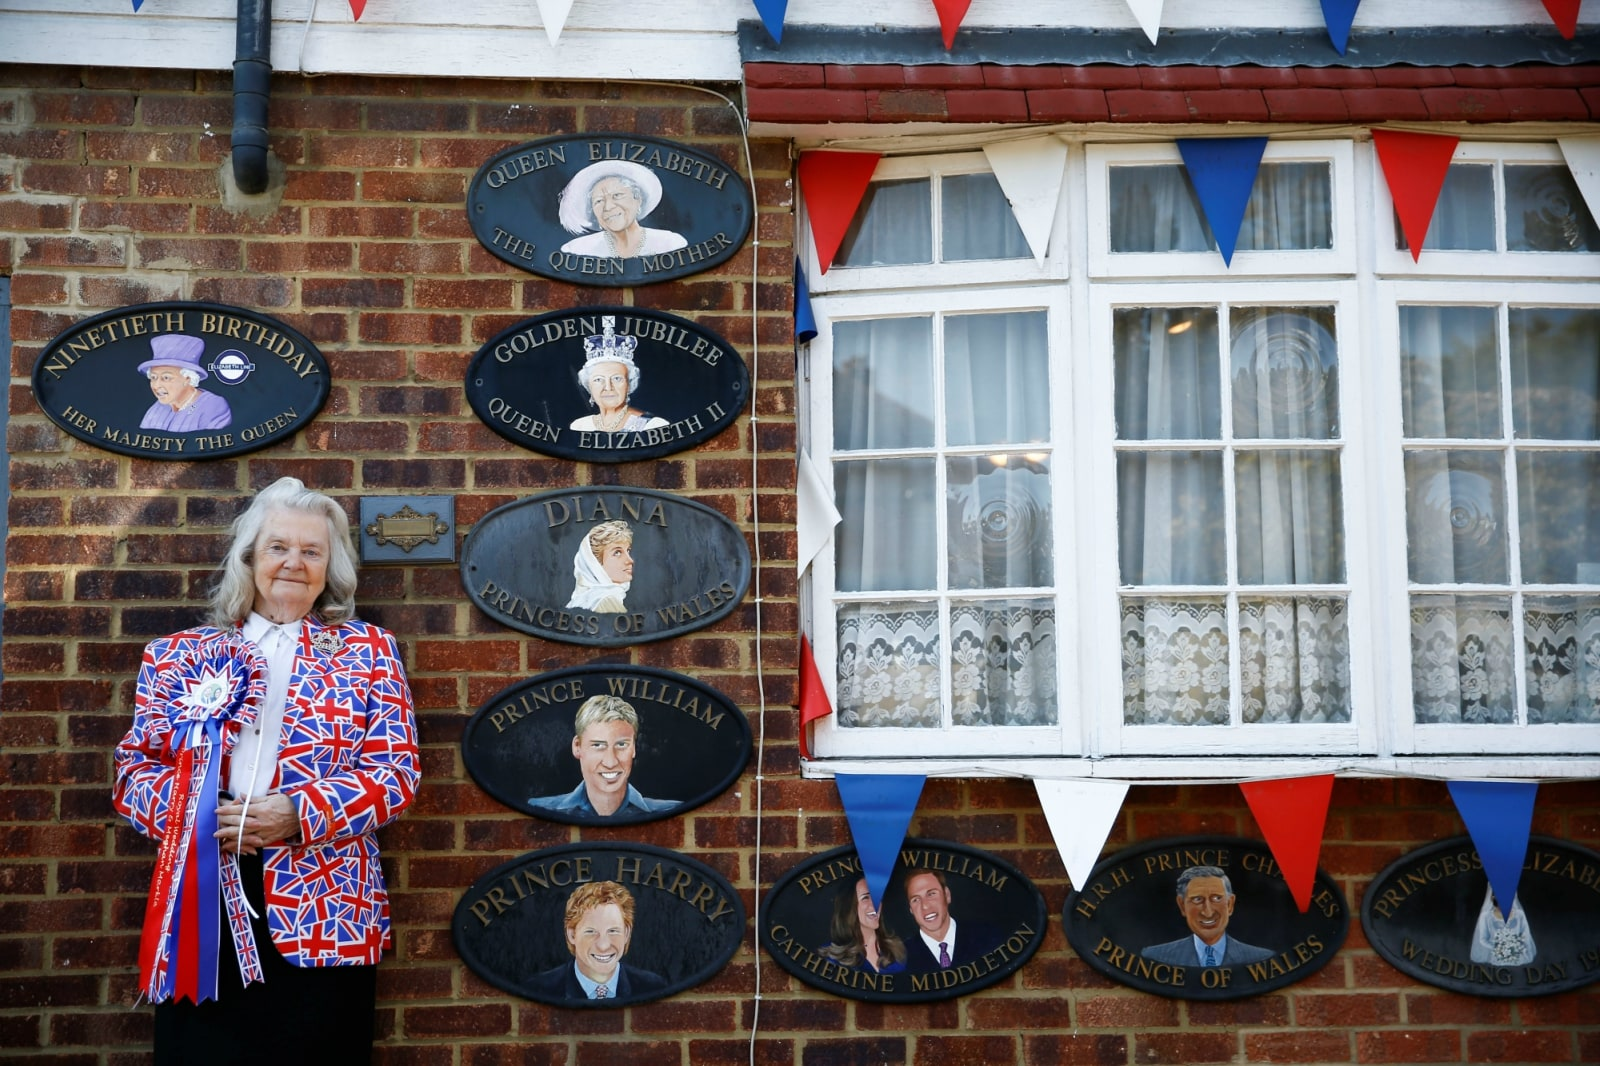 Royal fan Margaret Tyler poses outside of her home, which is decorated with Royal Family memorabilia, in north London, Britain April 10, 2019. REUTERS/Henry Nicholls/Files